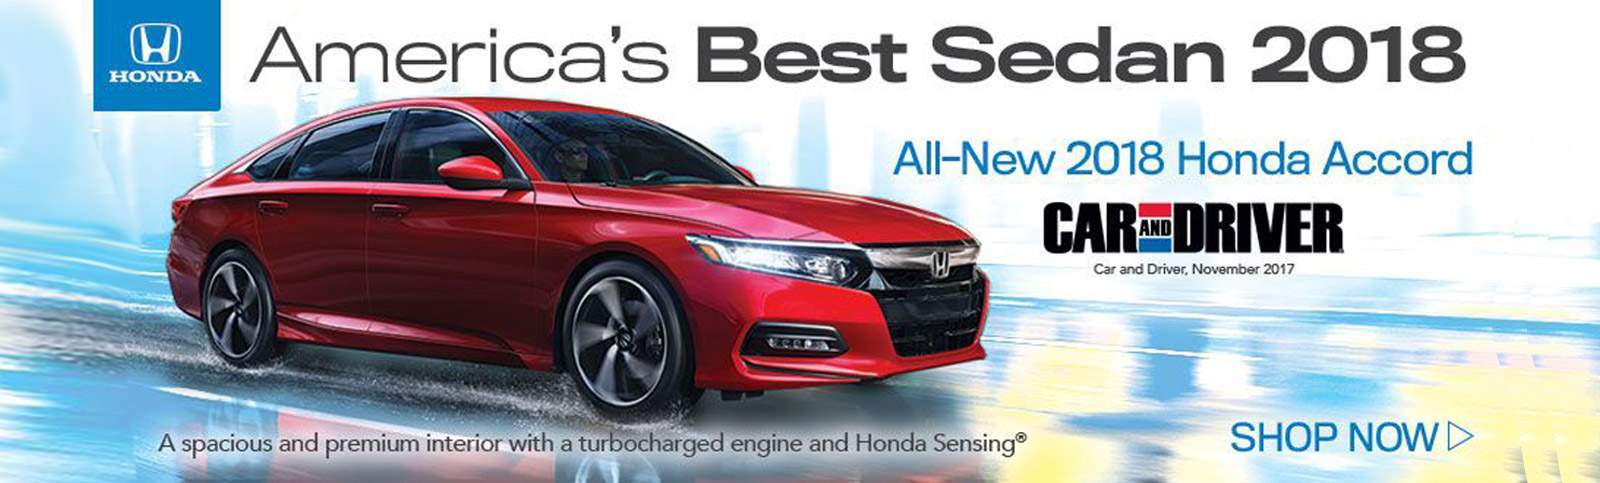 Americas Best Sedan Honda Accord 2018